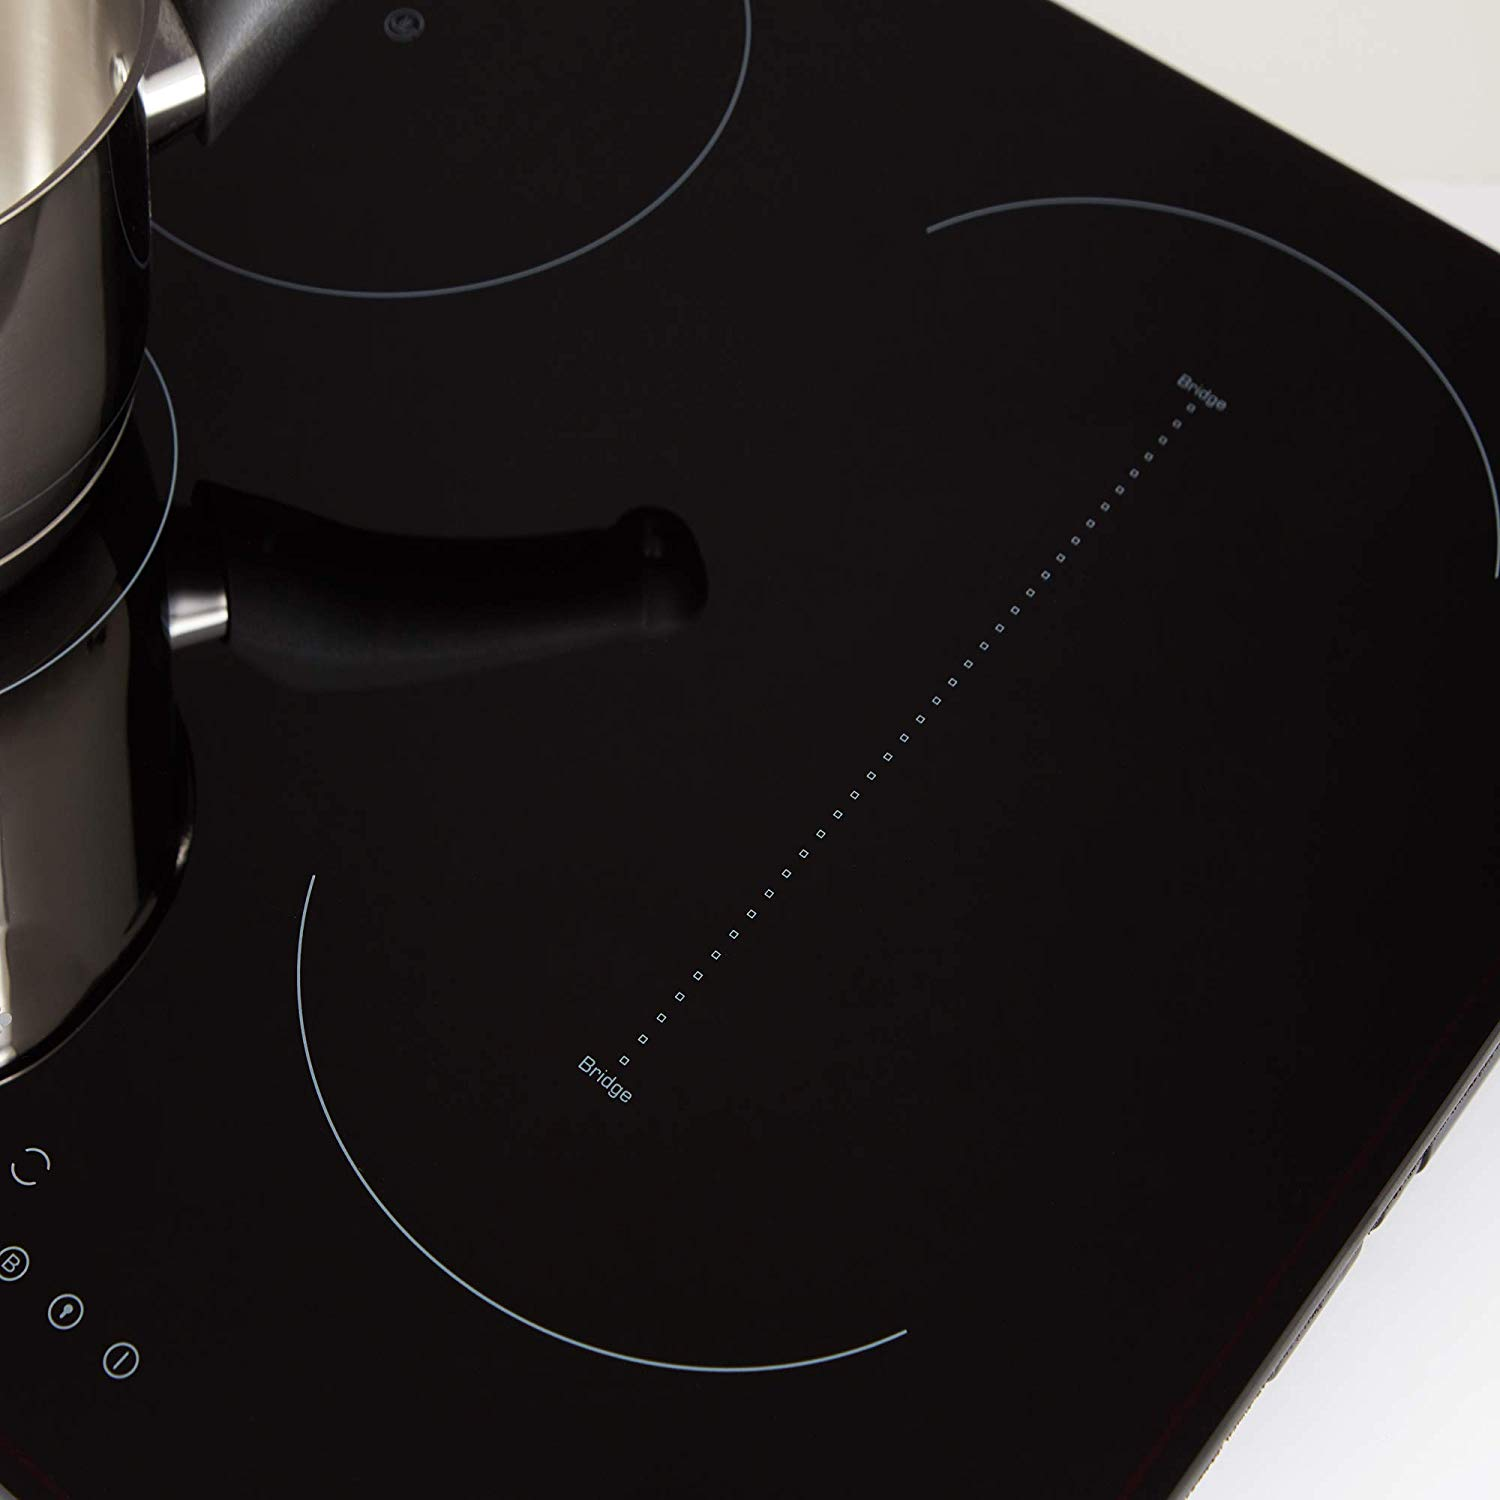 Cookology CIB605 Induction Hob